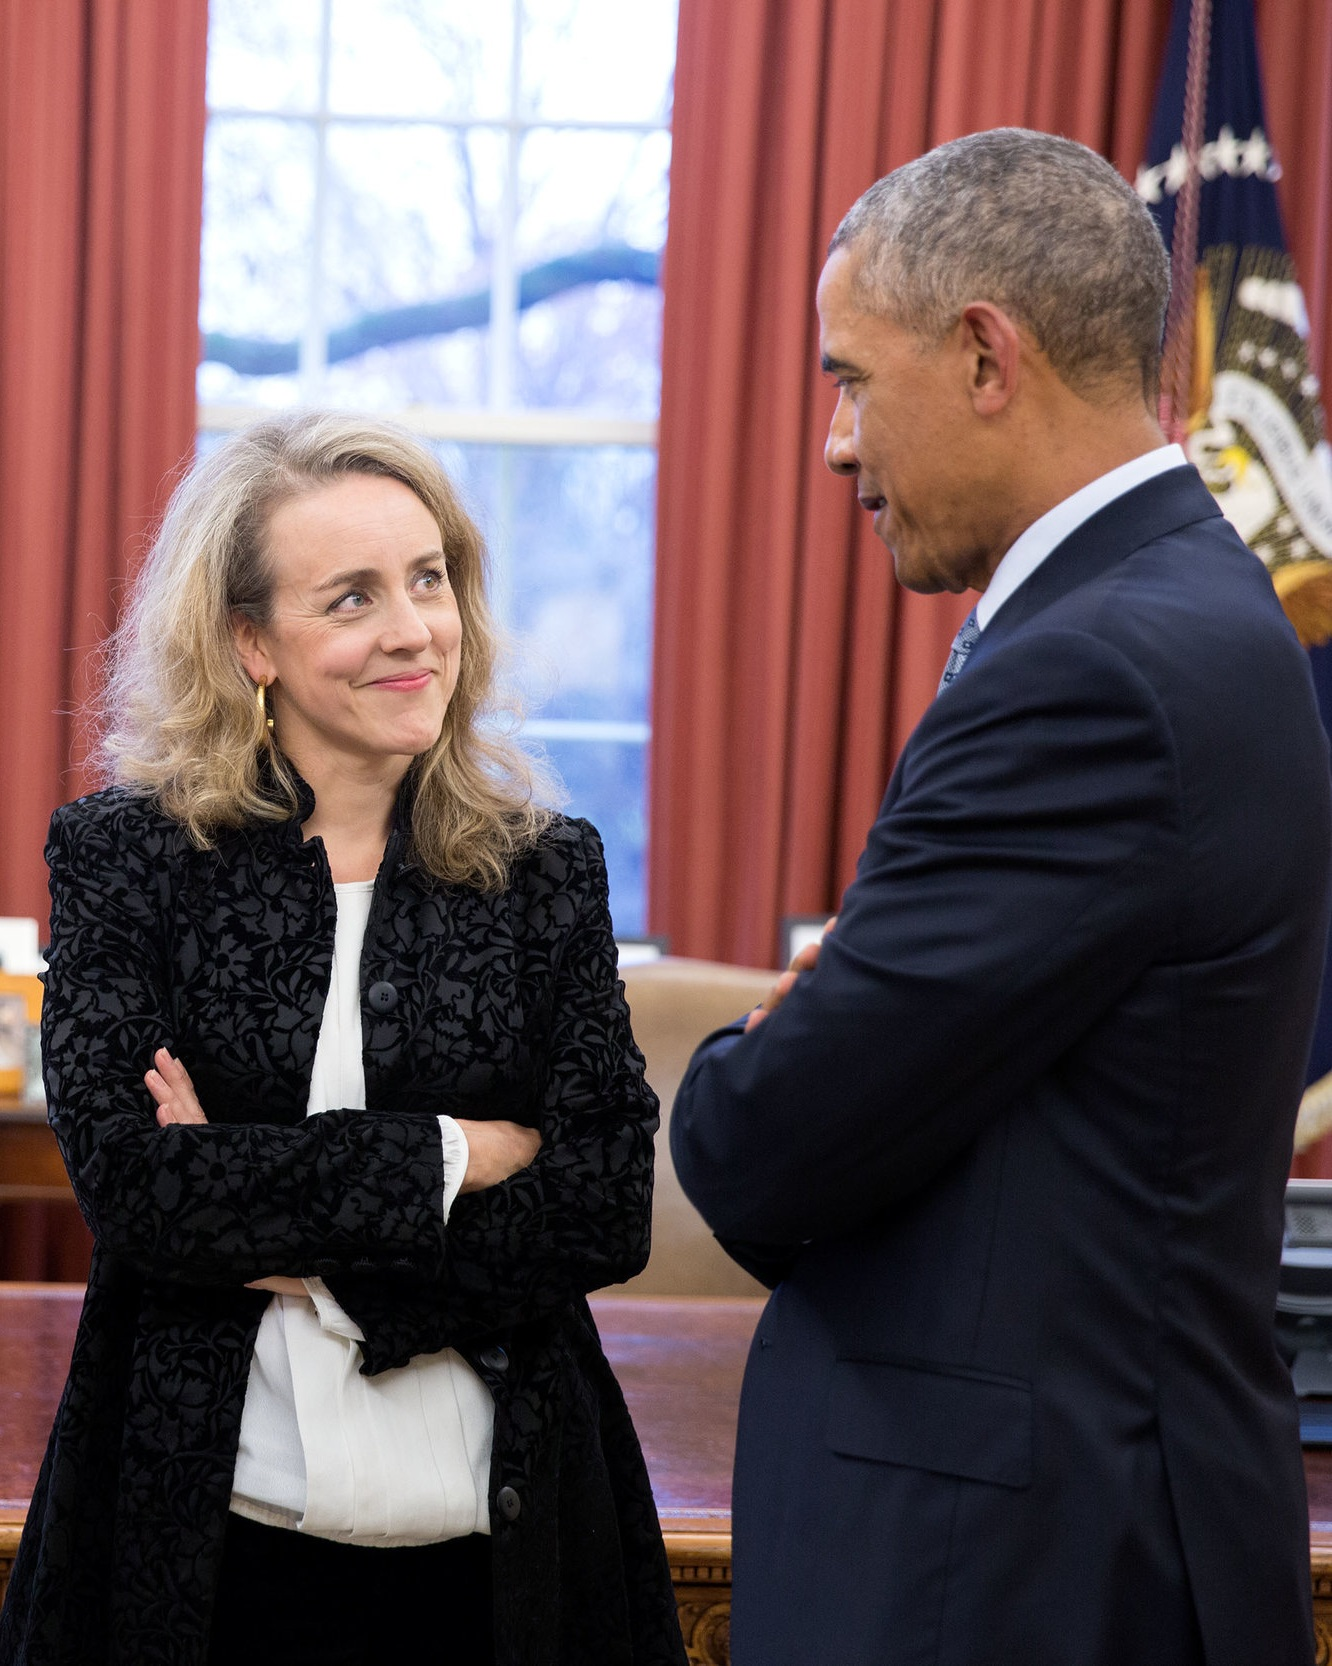 Nicola Green with President Barack Obama